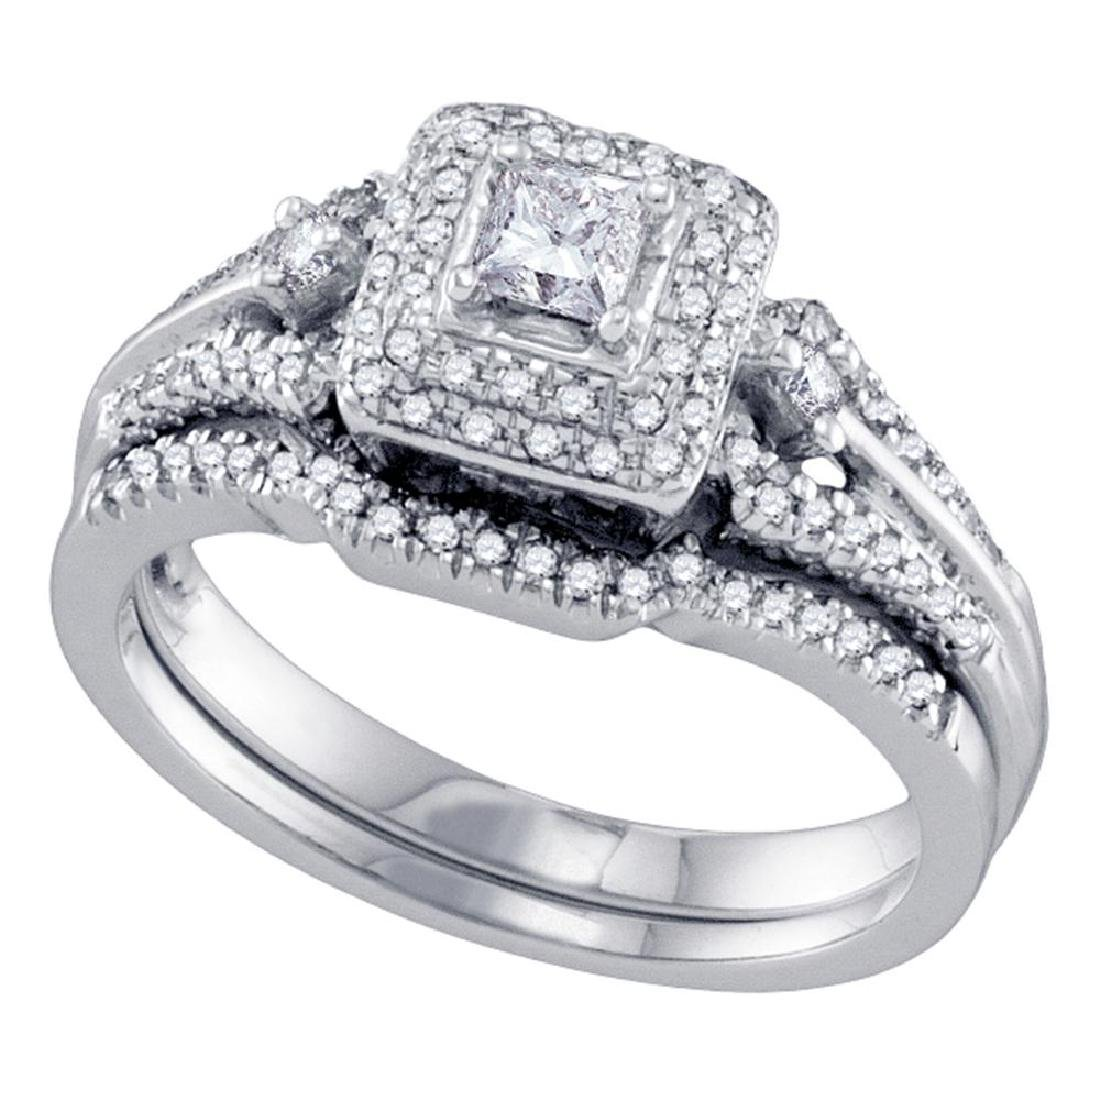 0.52 CTW Princess Diamond Bridal Engagement Ring 14KT